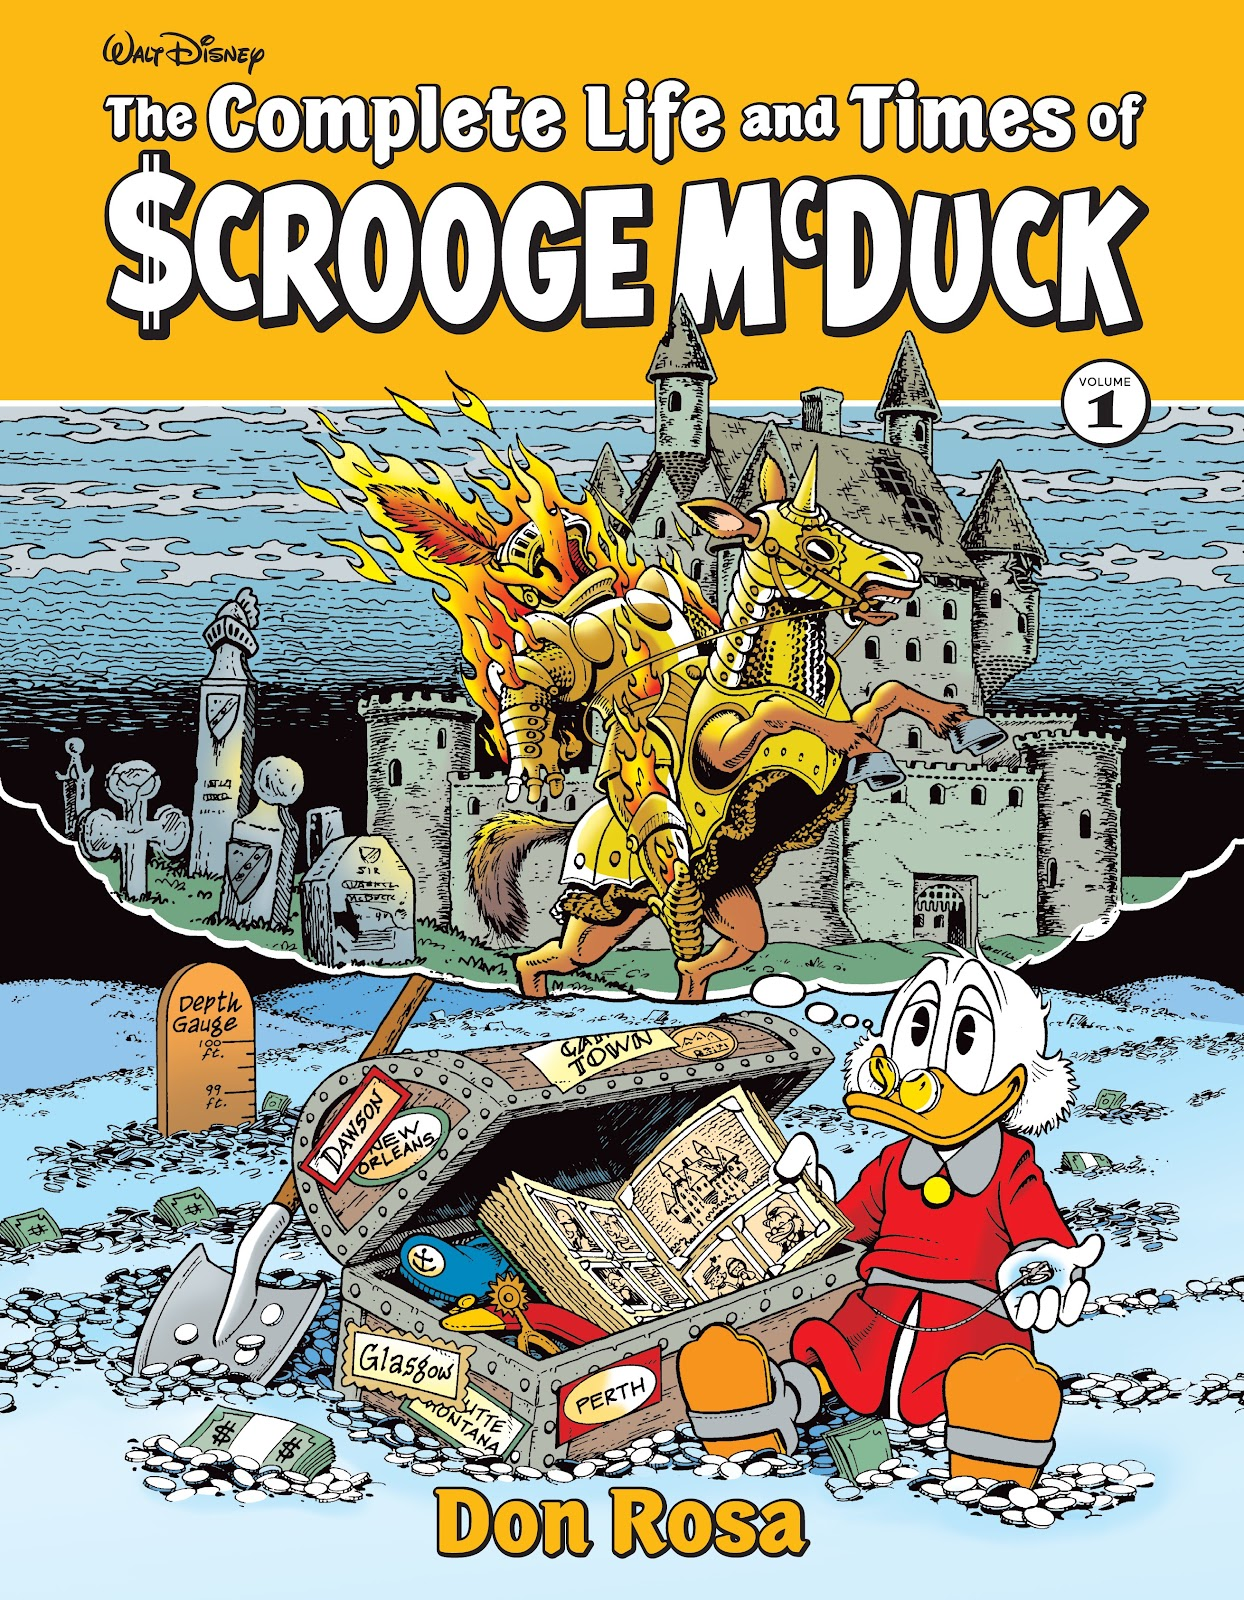 Read online The Complete Life and Times of Scrooge McDuck comic -  Issue # TPB 1 (Part 1) - 1